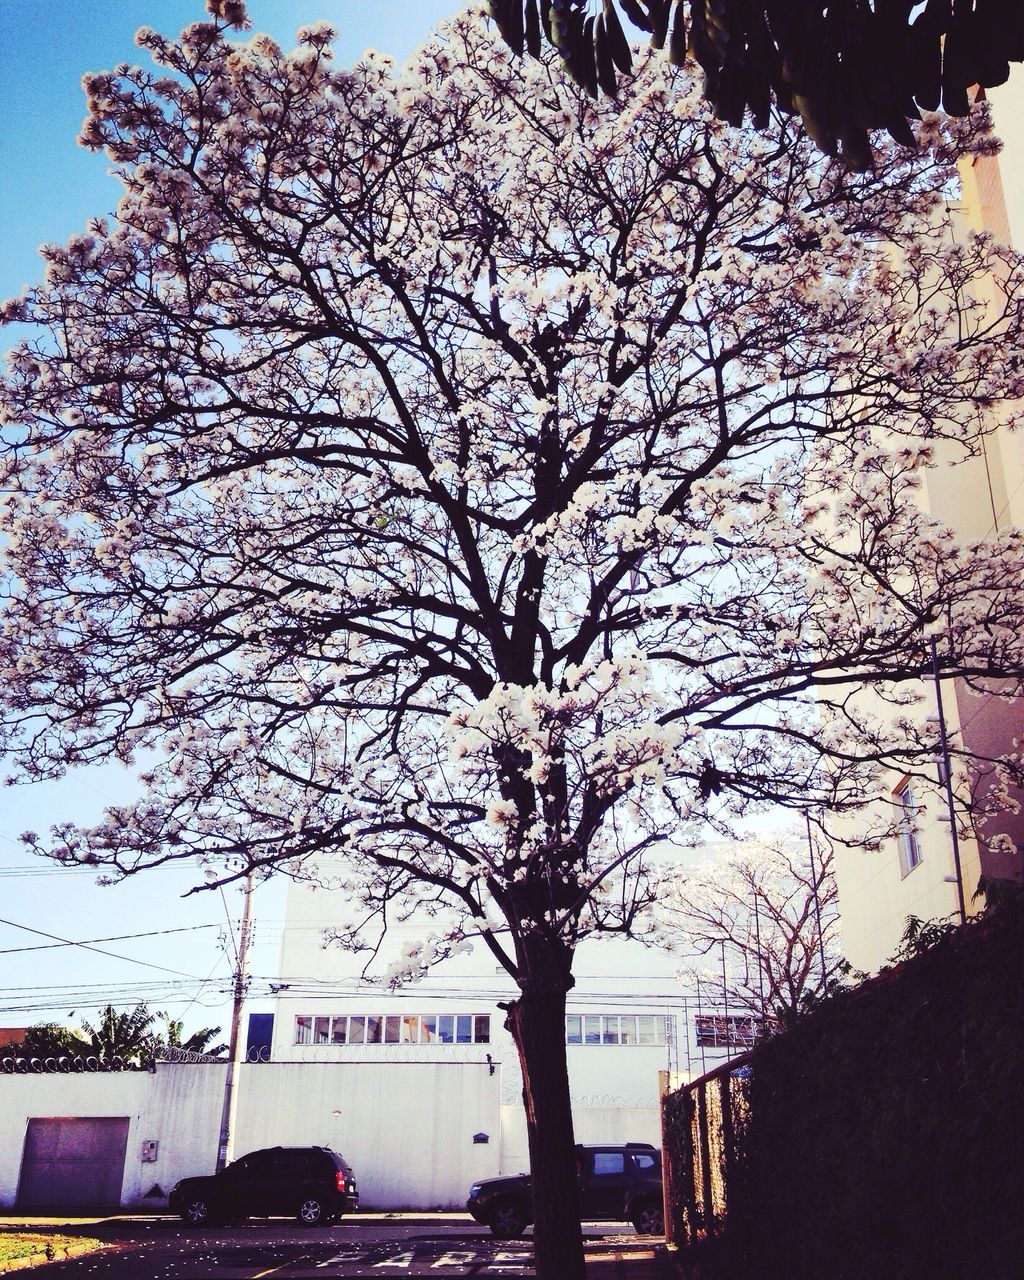 tree, no people, branch, outdoors, architecture, car, day, built structure, building exterior, city, land vehicle, nature, sky, road, growth, flower, beauty in nature, close-up